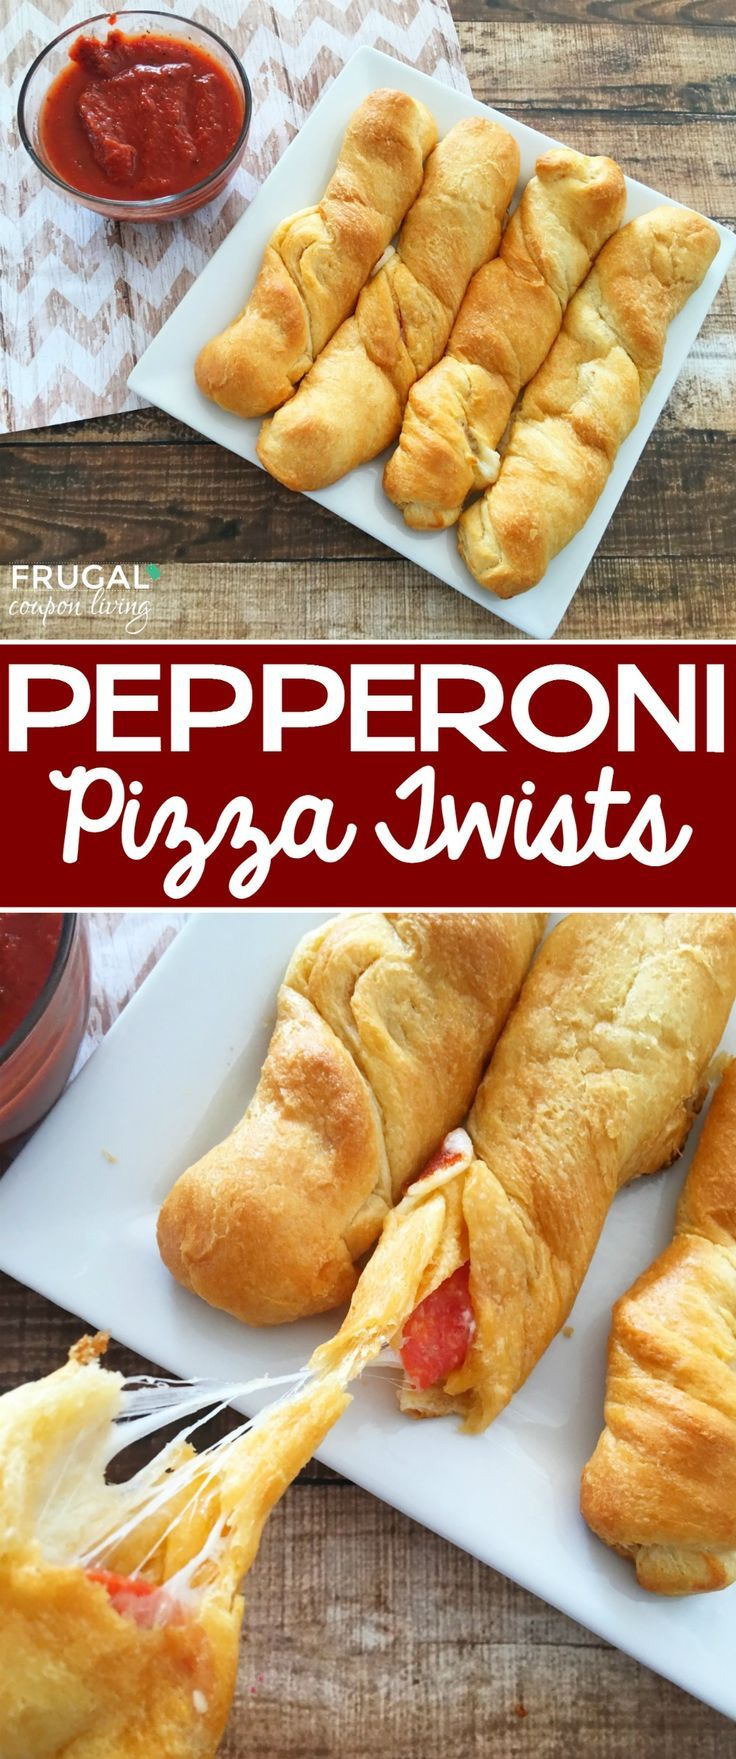 Homemade Pepperoni Pizza Twists made with Crescent Rolls on Frugal Coupon Living...